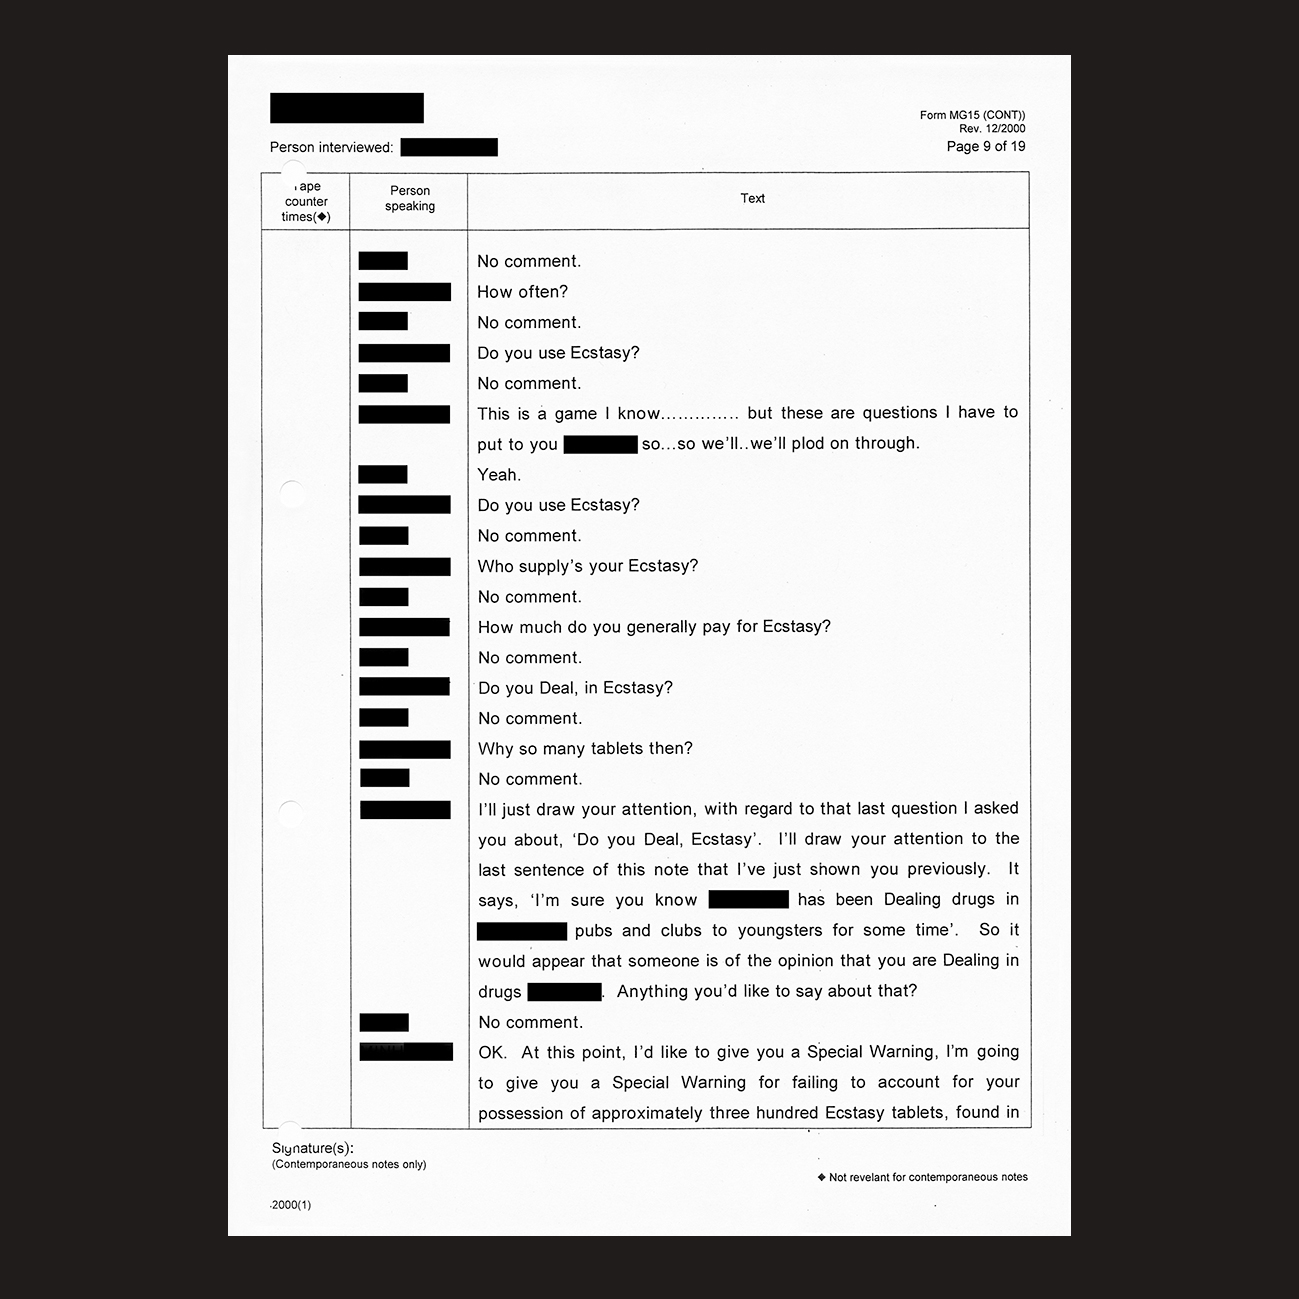 JM Bail 159 - Interview 21 - This Is A Game.jpg